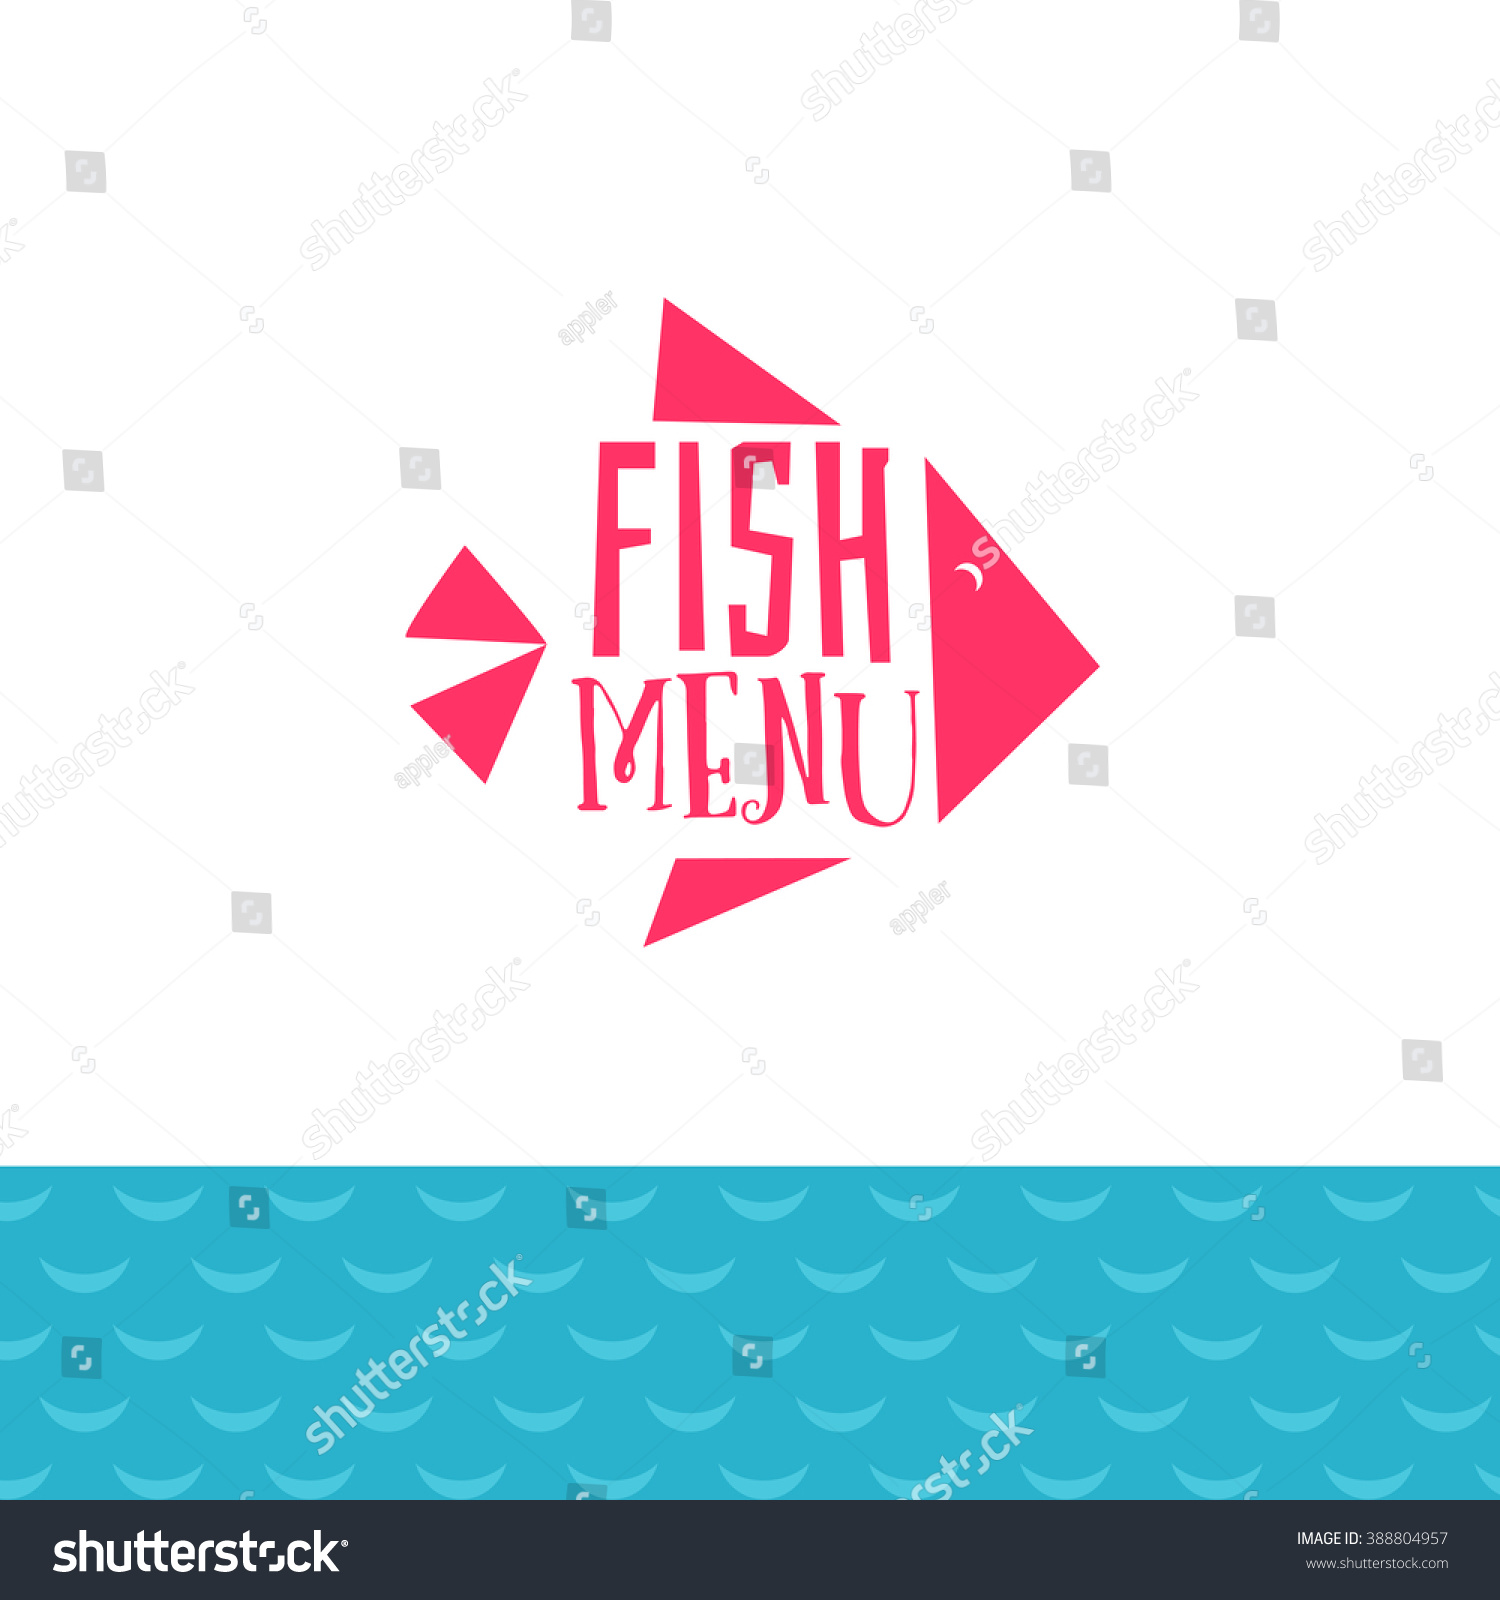 fish menu logo sea waves decor stock vector 388804957 - shutterstock